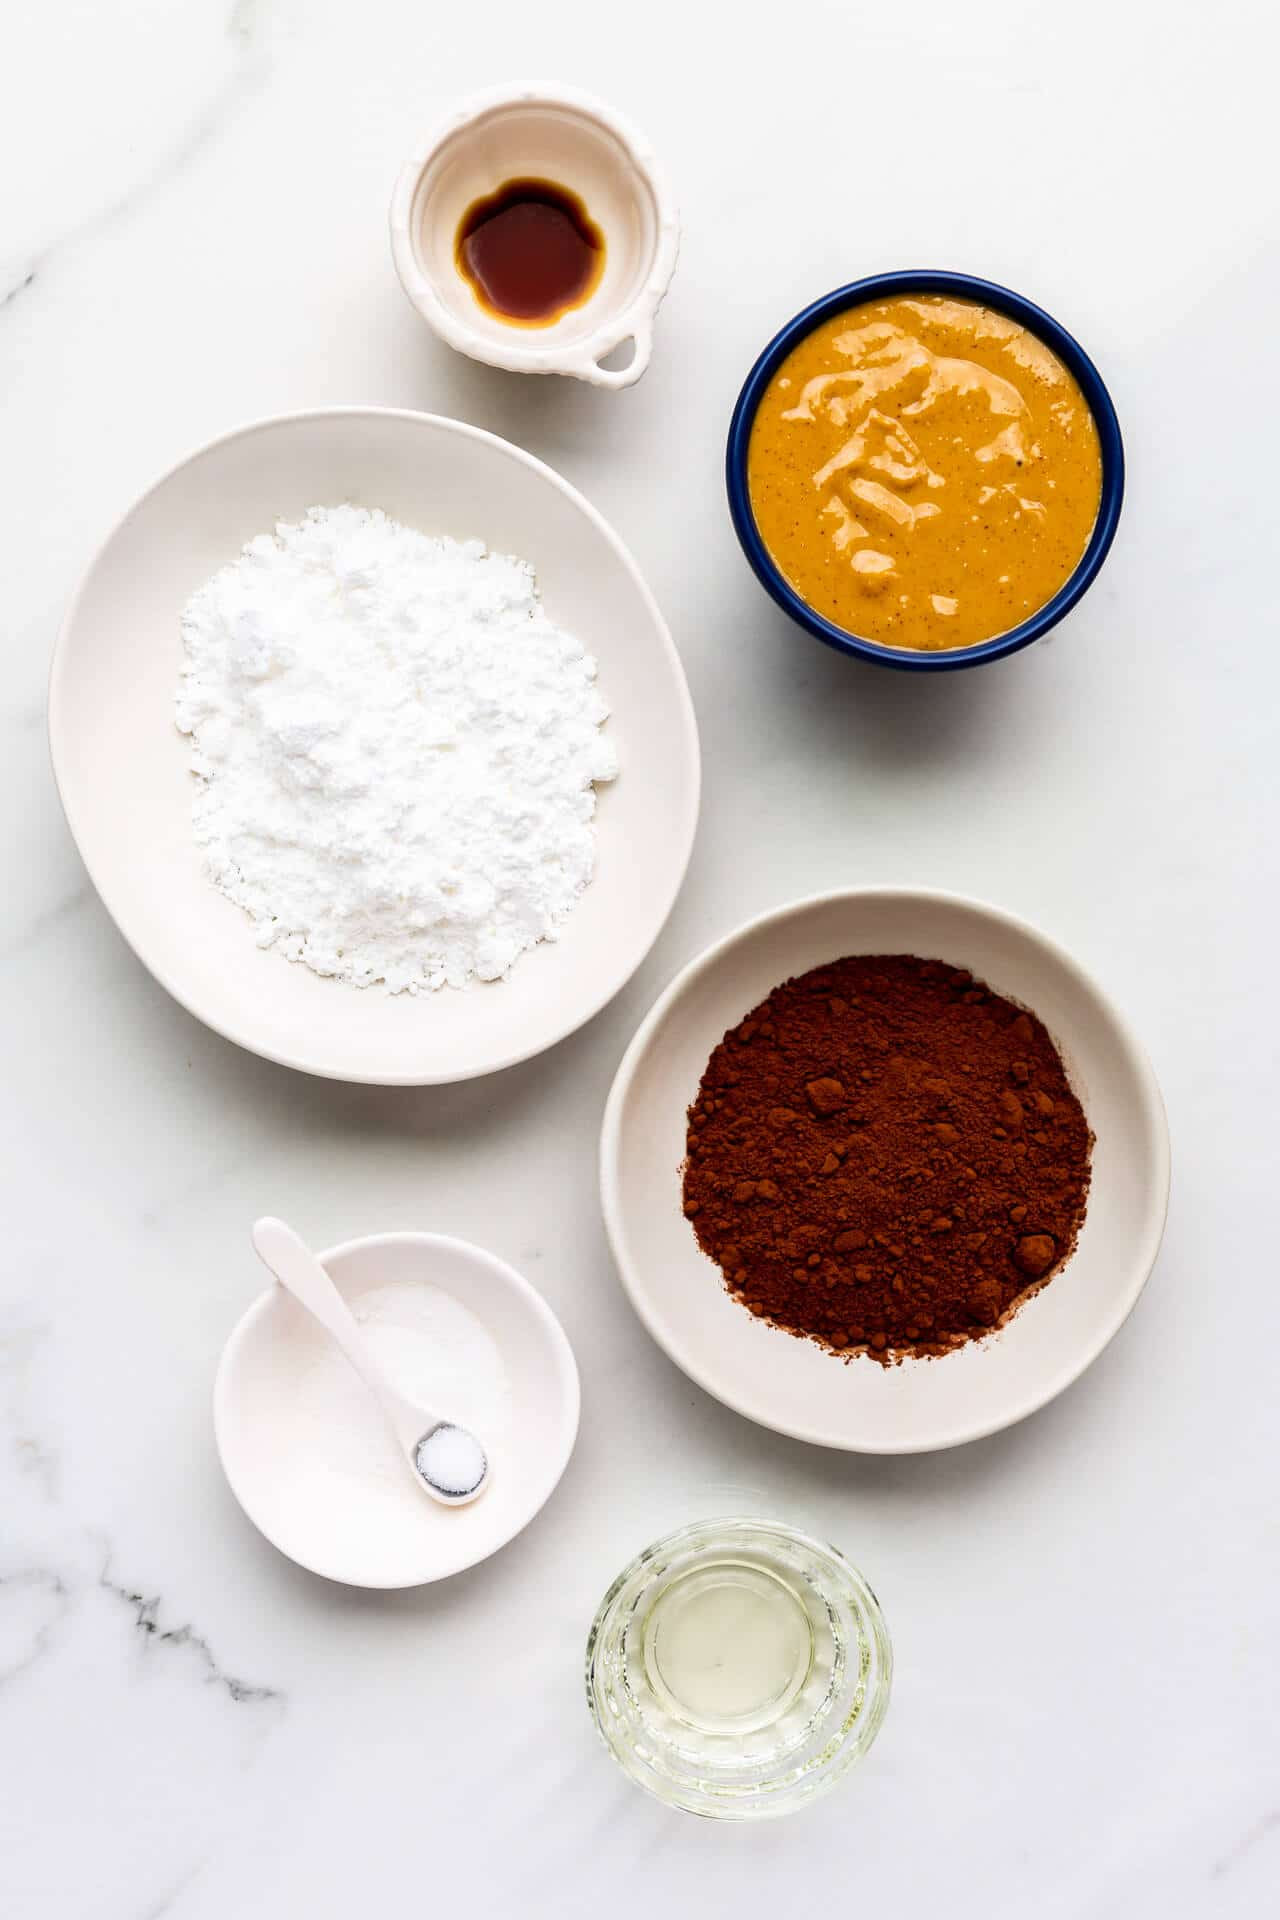 Ingredients to make homemade chocolate peanut butter spread include vanilla extract, peanut butter, powdered sugar, cocoa powder, salt, and a little canola oil.